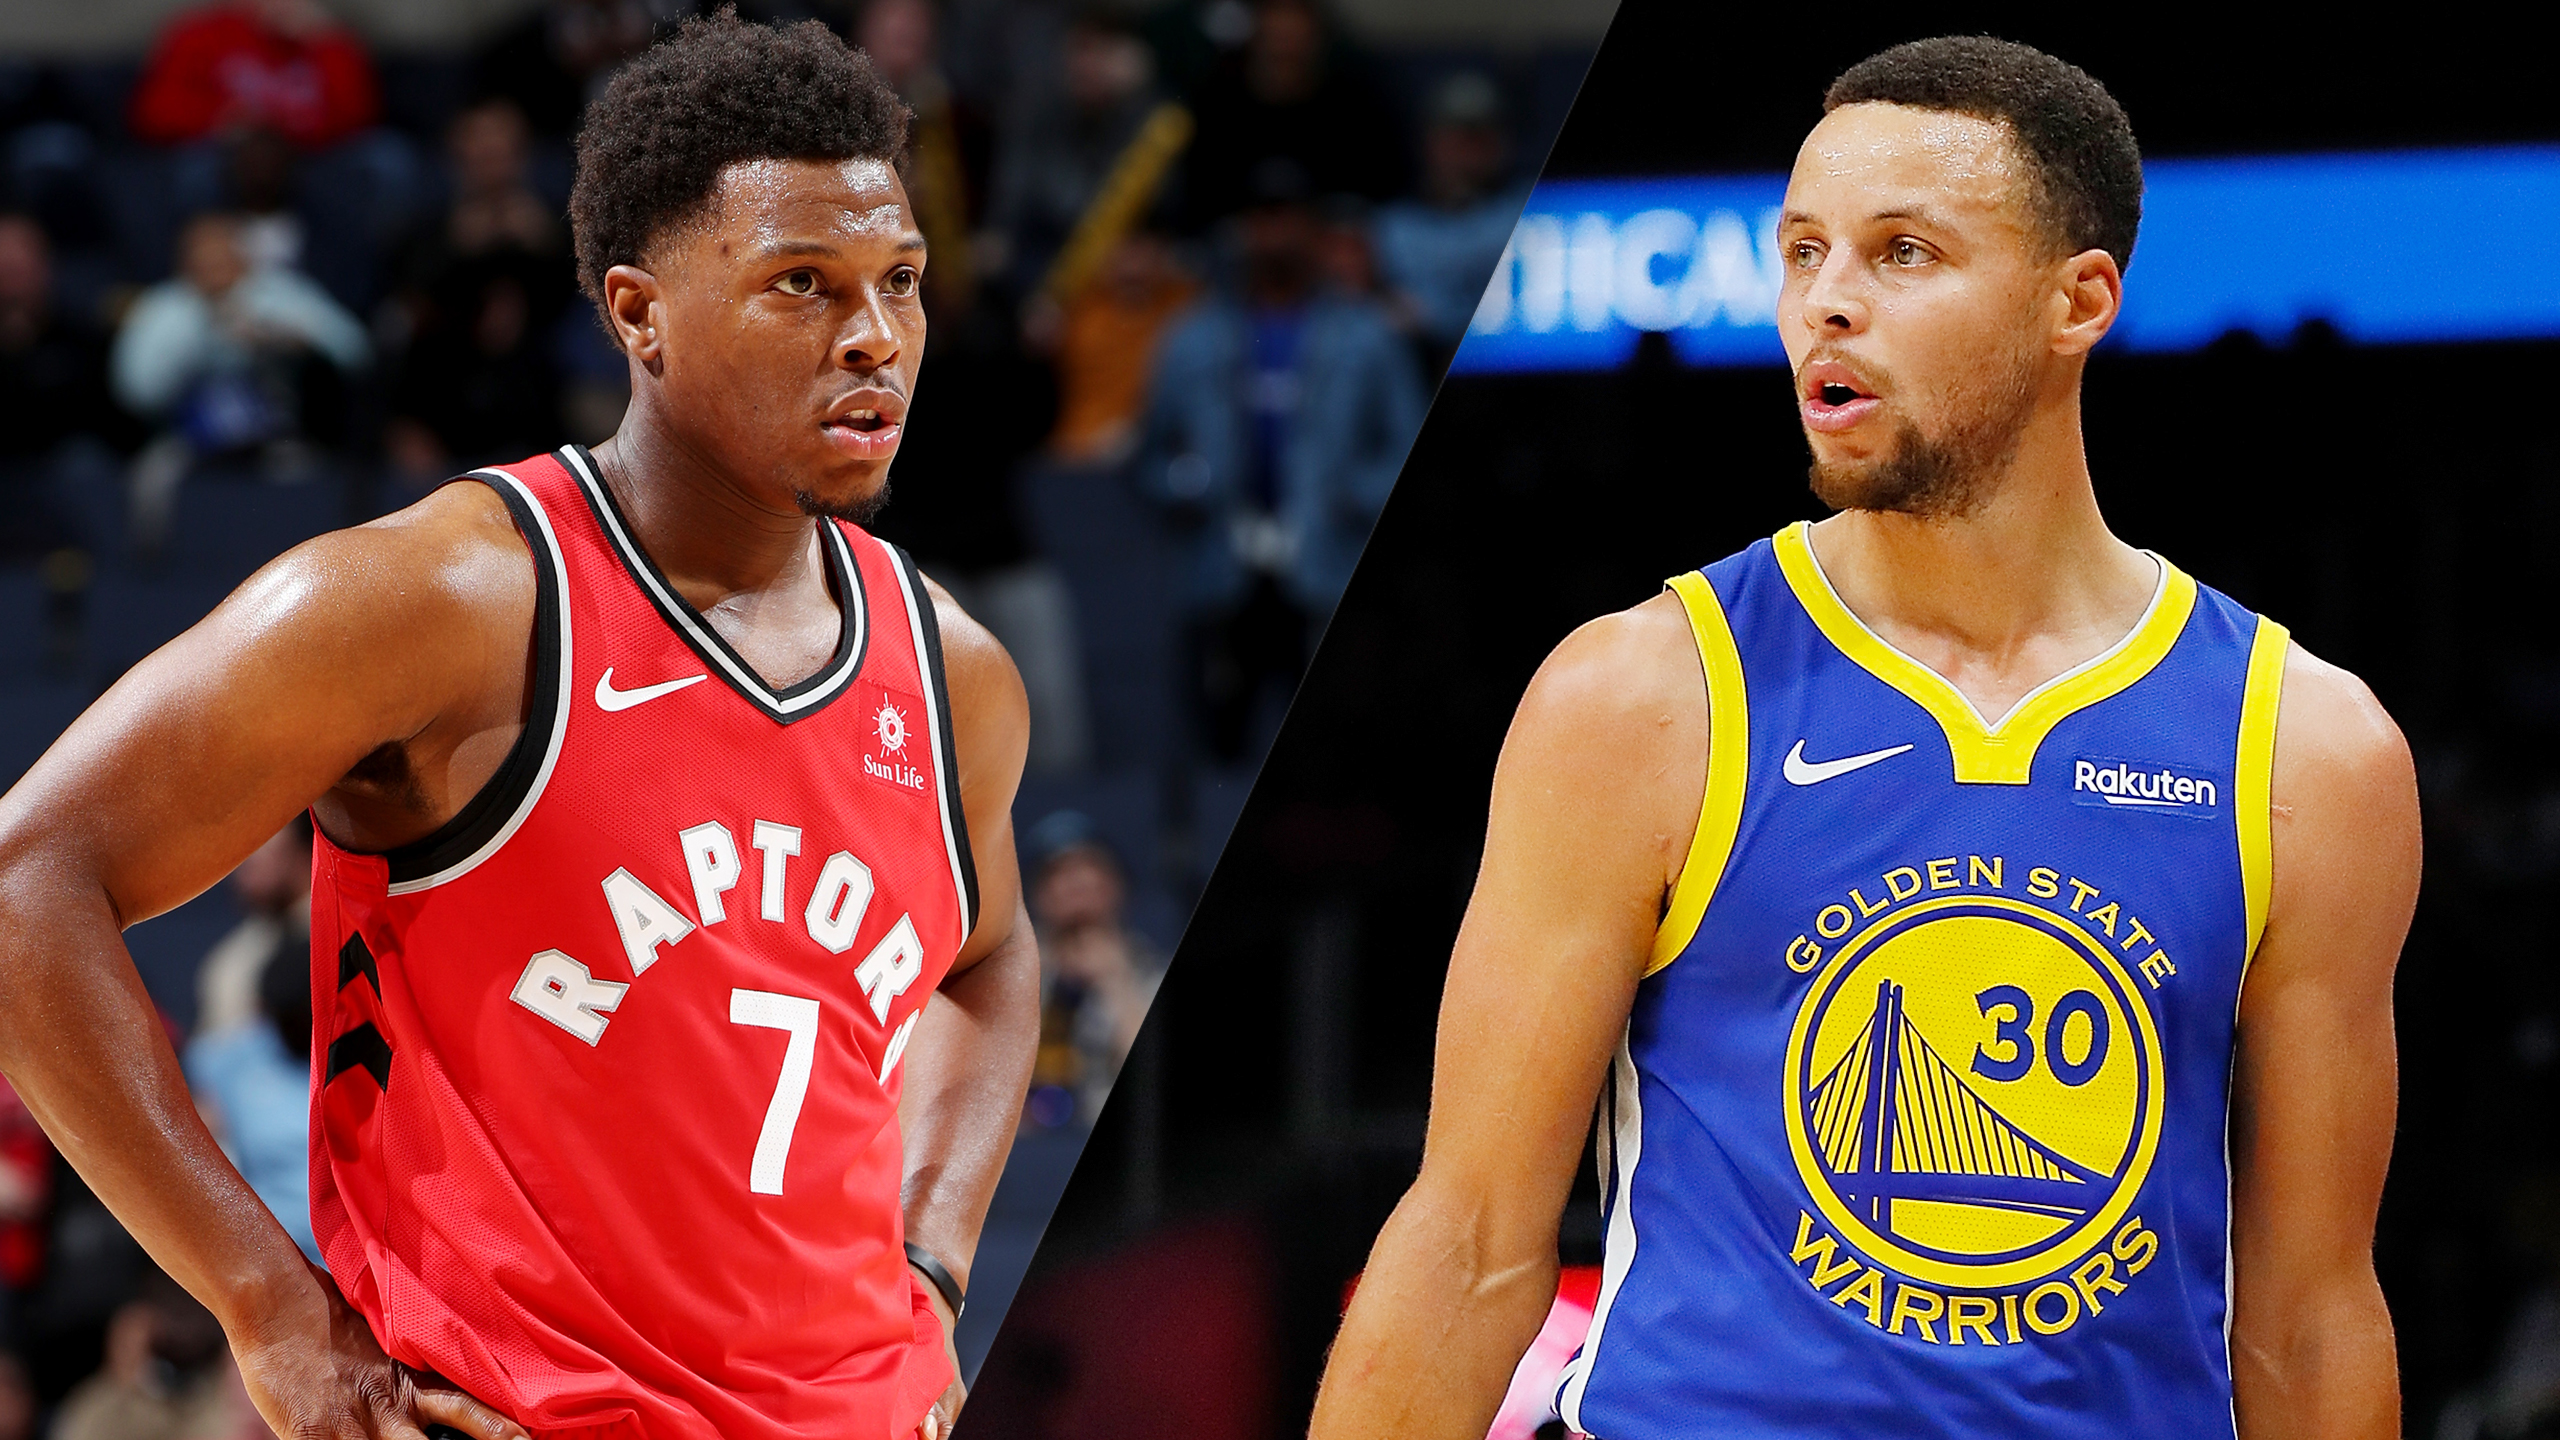 Toronto Raptors vs. Golden State Warriors